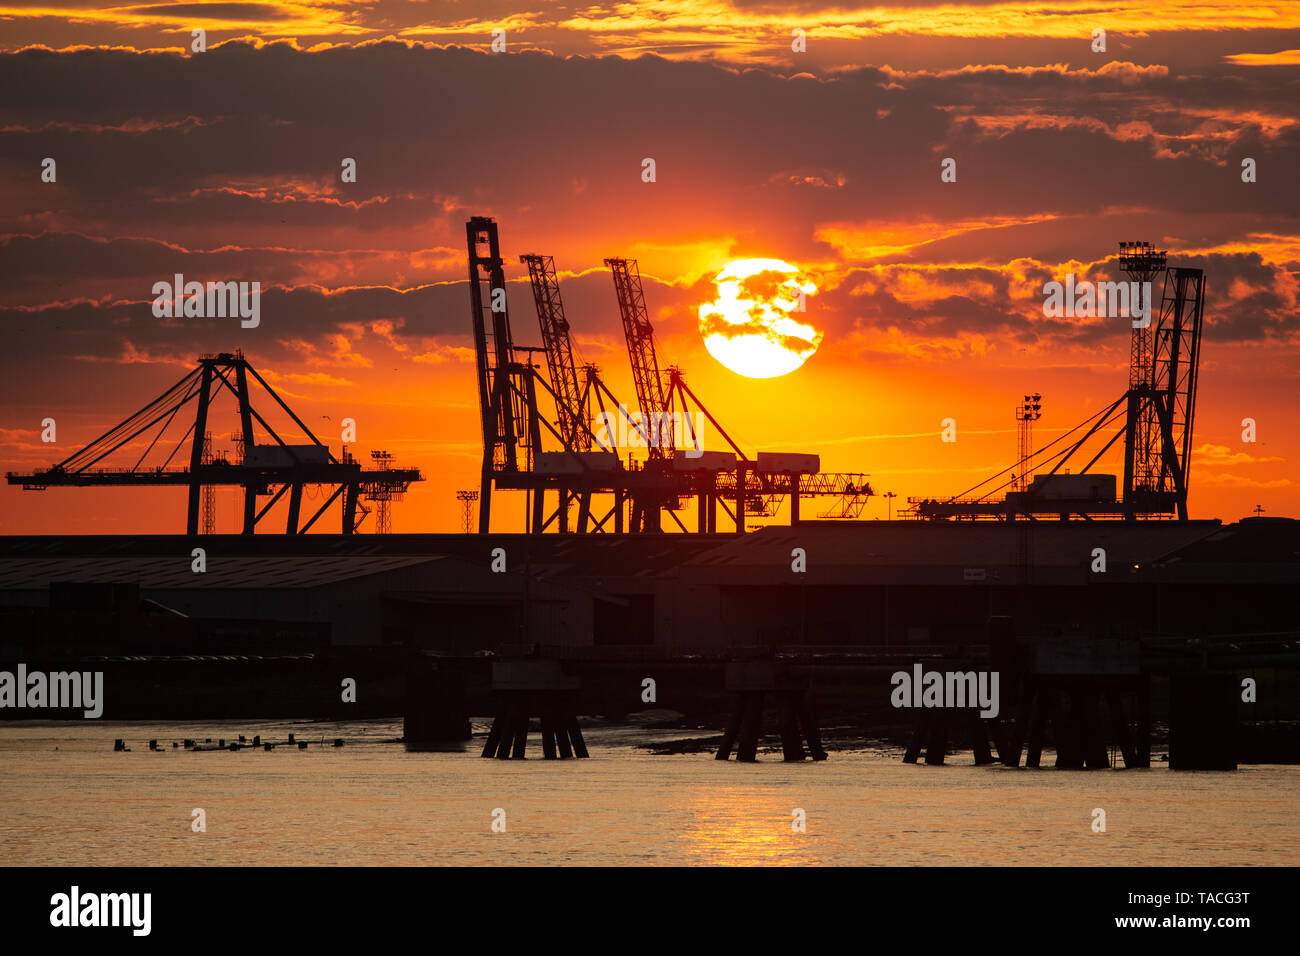 Gravesend, Kent, United Kingdom. 23rd May, 2019. Dramatic sunset over the River Thames seen from Gravesend looking towards Tilbury Docks. Rob Powell/Alamy Live News Stock Photo